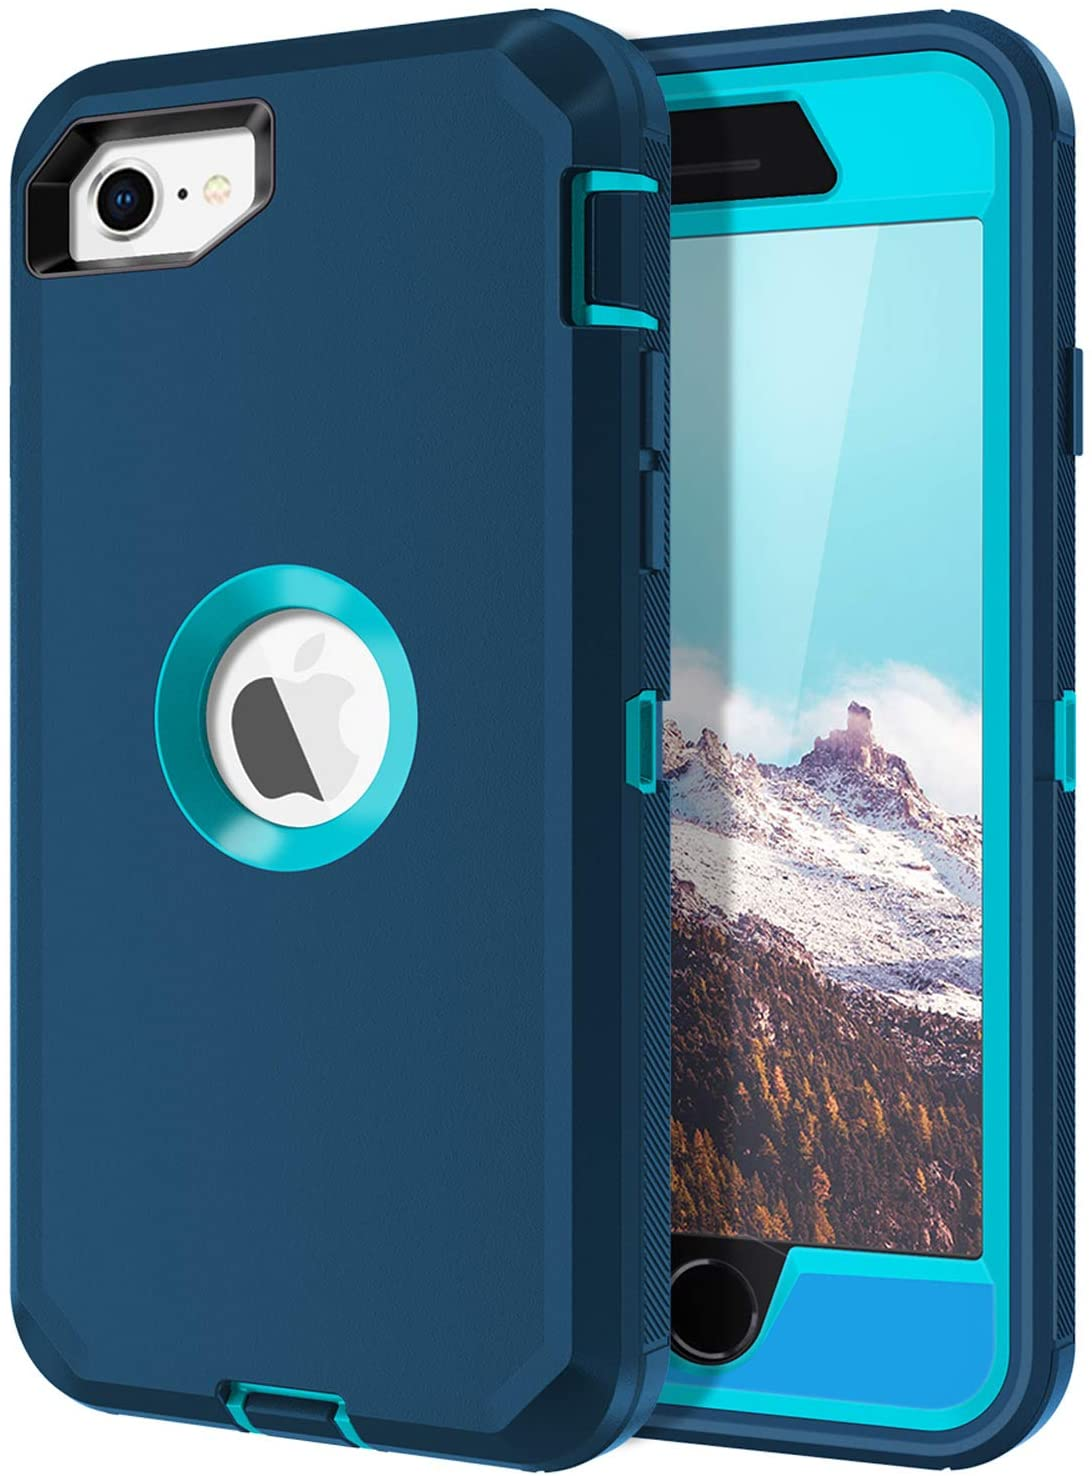 I-HONVA for iPhone SE 2020 Case Built-in Screen Protector Shockproof Dust/Drop Proof 3-Layer Full Body Protection Rugged Heavy Duty Durable Cover Case for Apple iPhone SE (2nd Gen) 4.7-inch, Turquoise